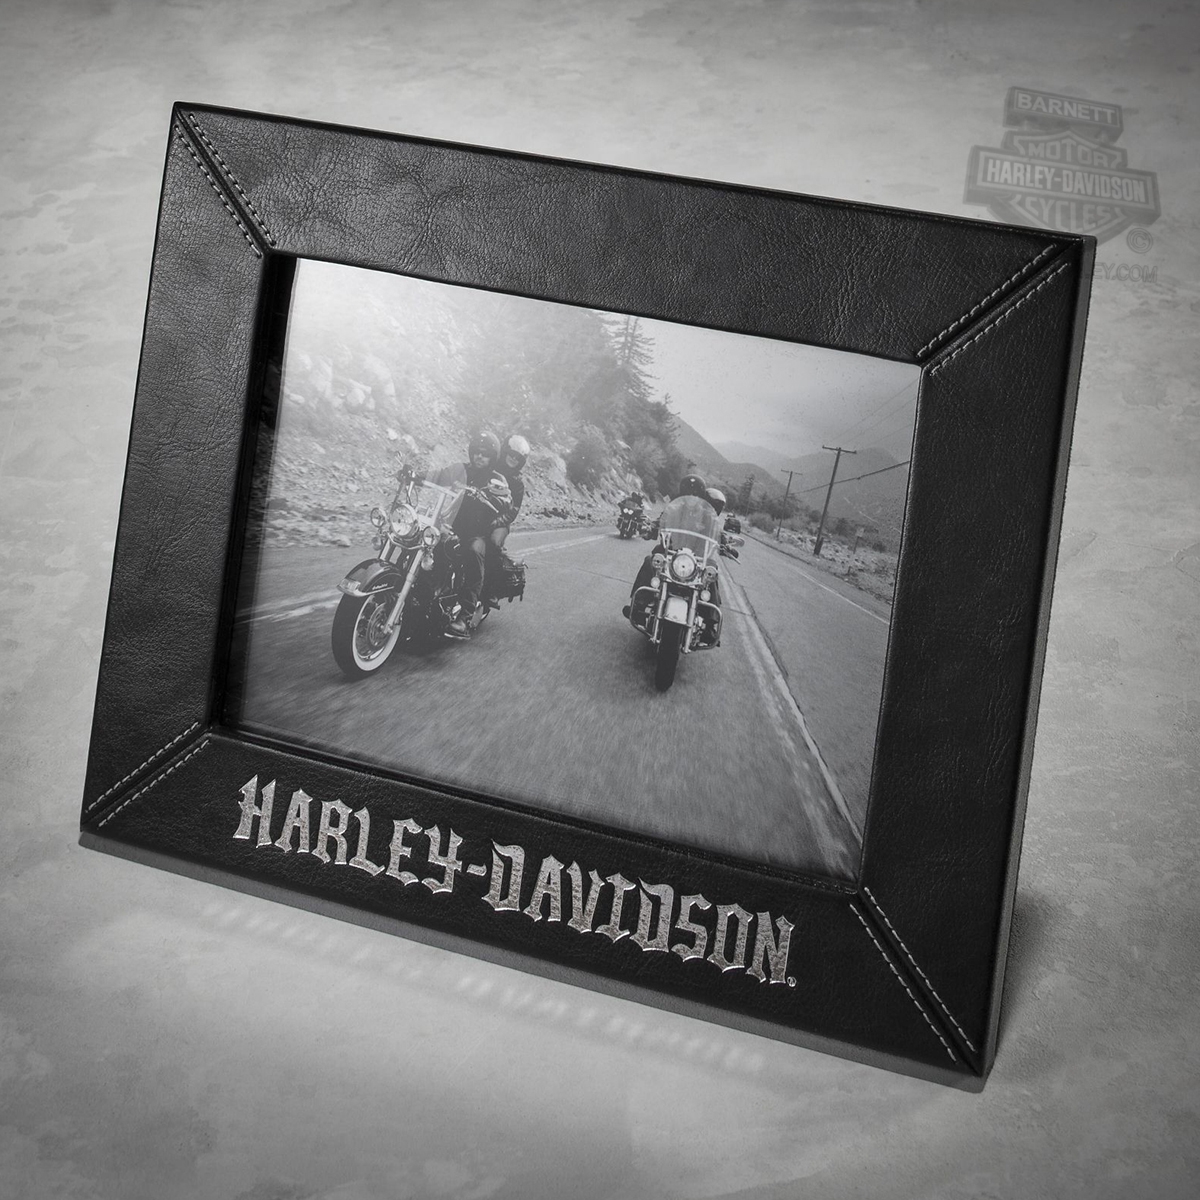 Attractive Harley Davidson Picture Frames 8x10 Composition - Ideas ...